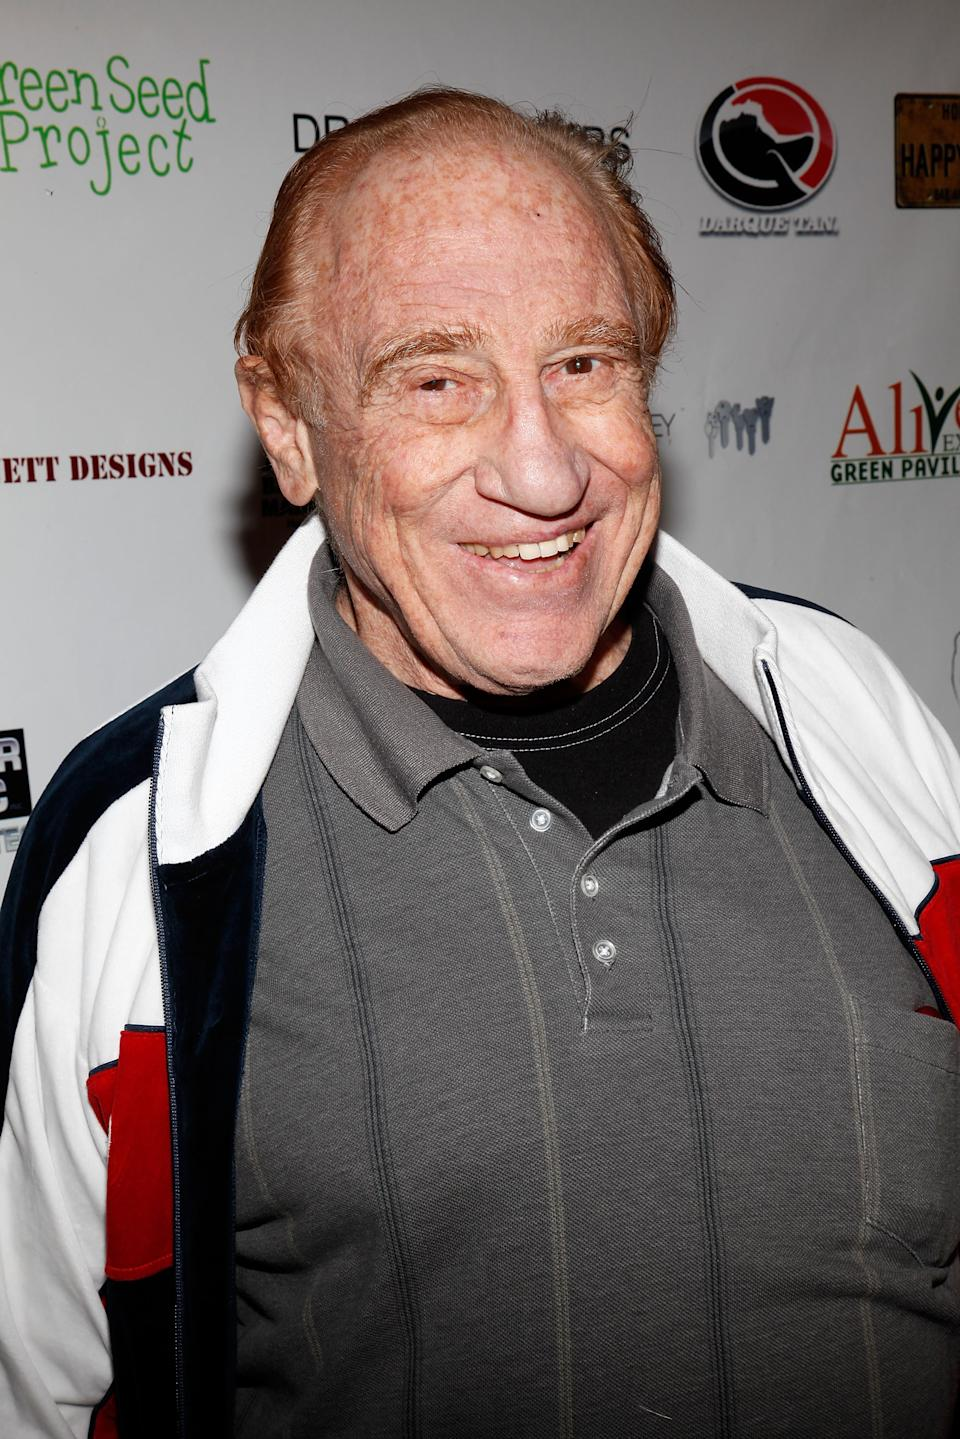 """HOLLYWOOD - FEBRUARY 21:  Gene LeBell  attends """"Changing Hands"""" premiere at The Happy Ending Bar & Restaurant on February 21, 2010 in Hollywood, California.  (Photo by Brian To/FilmMagic)"""